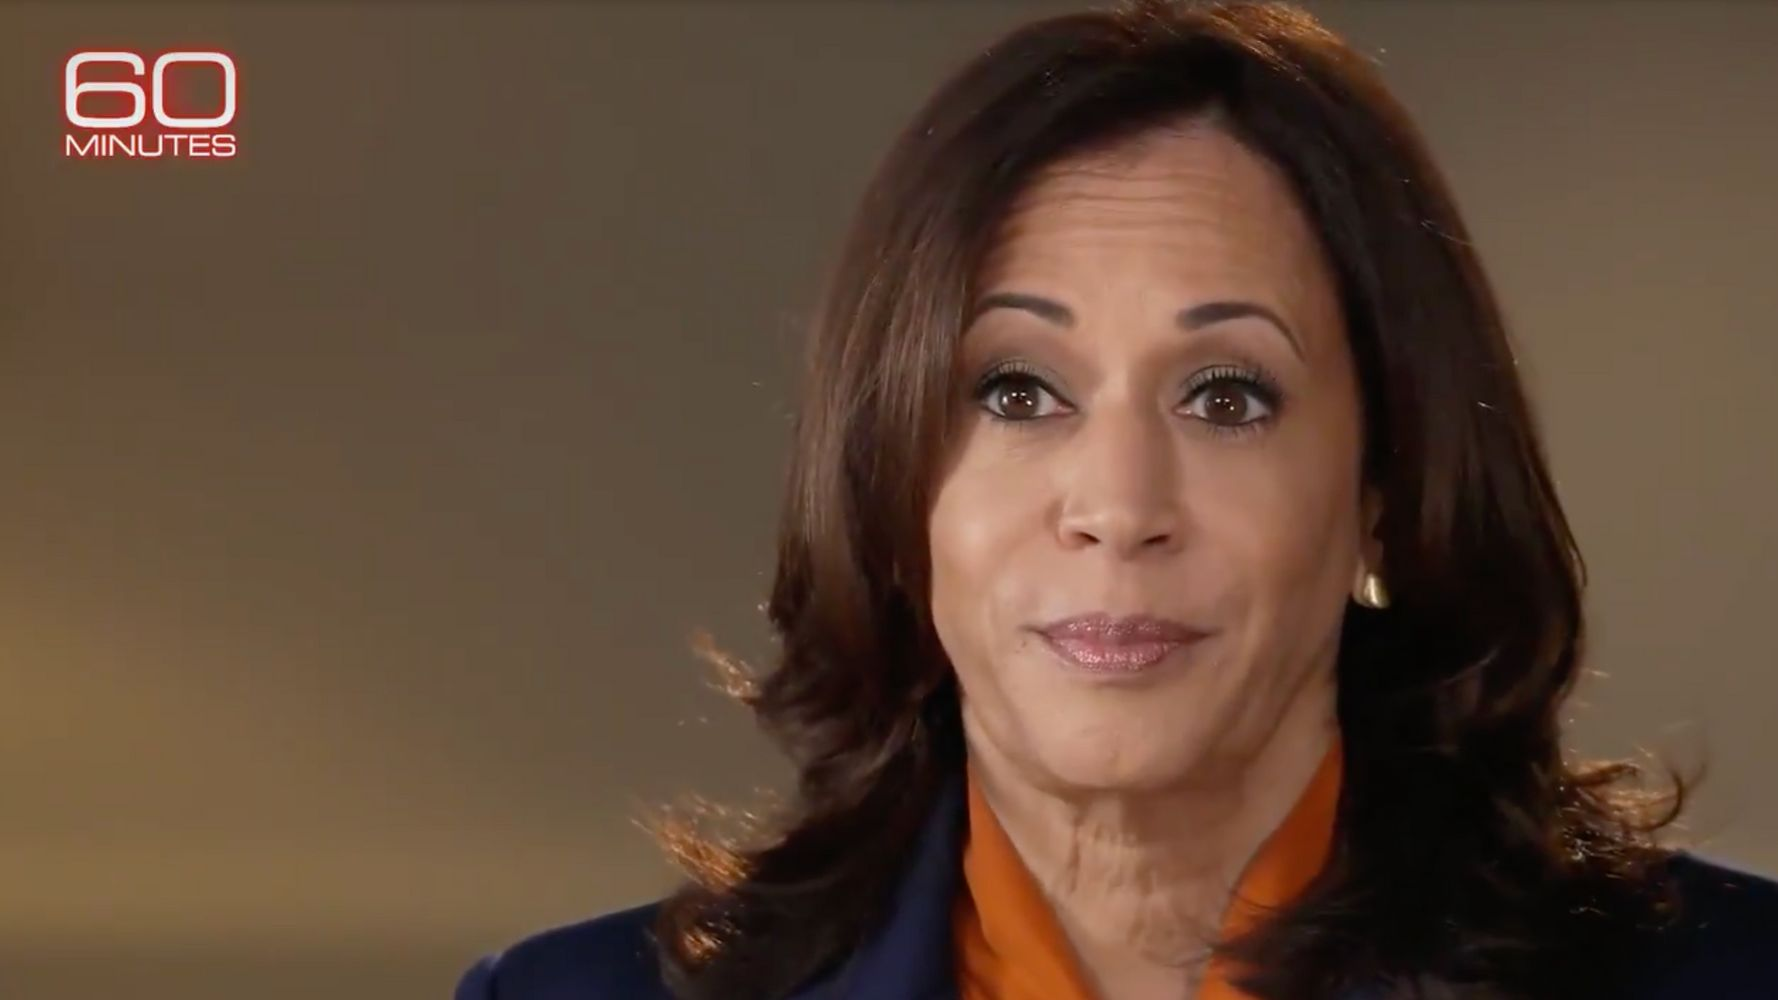 Kamala Harris: Being The First Female Vice President Would Change The Future